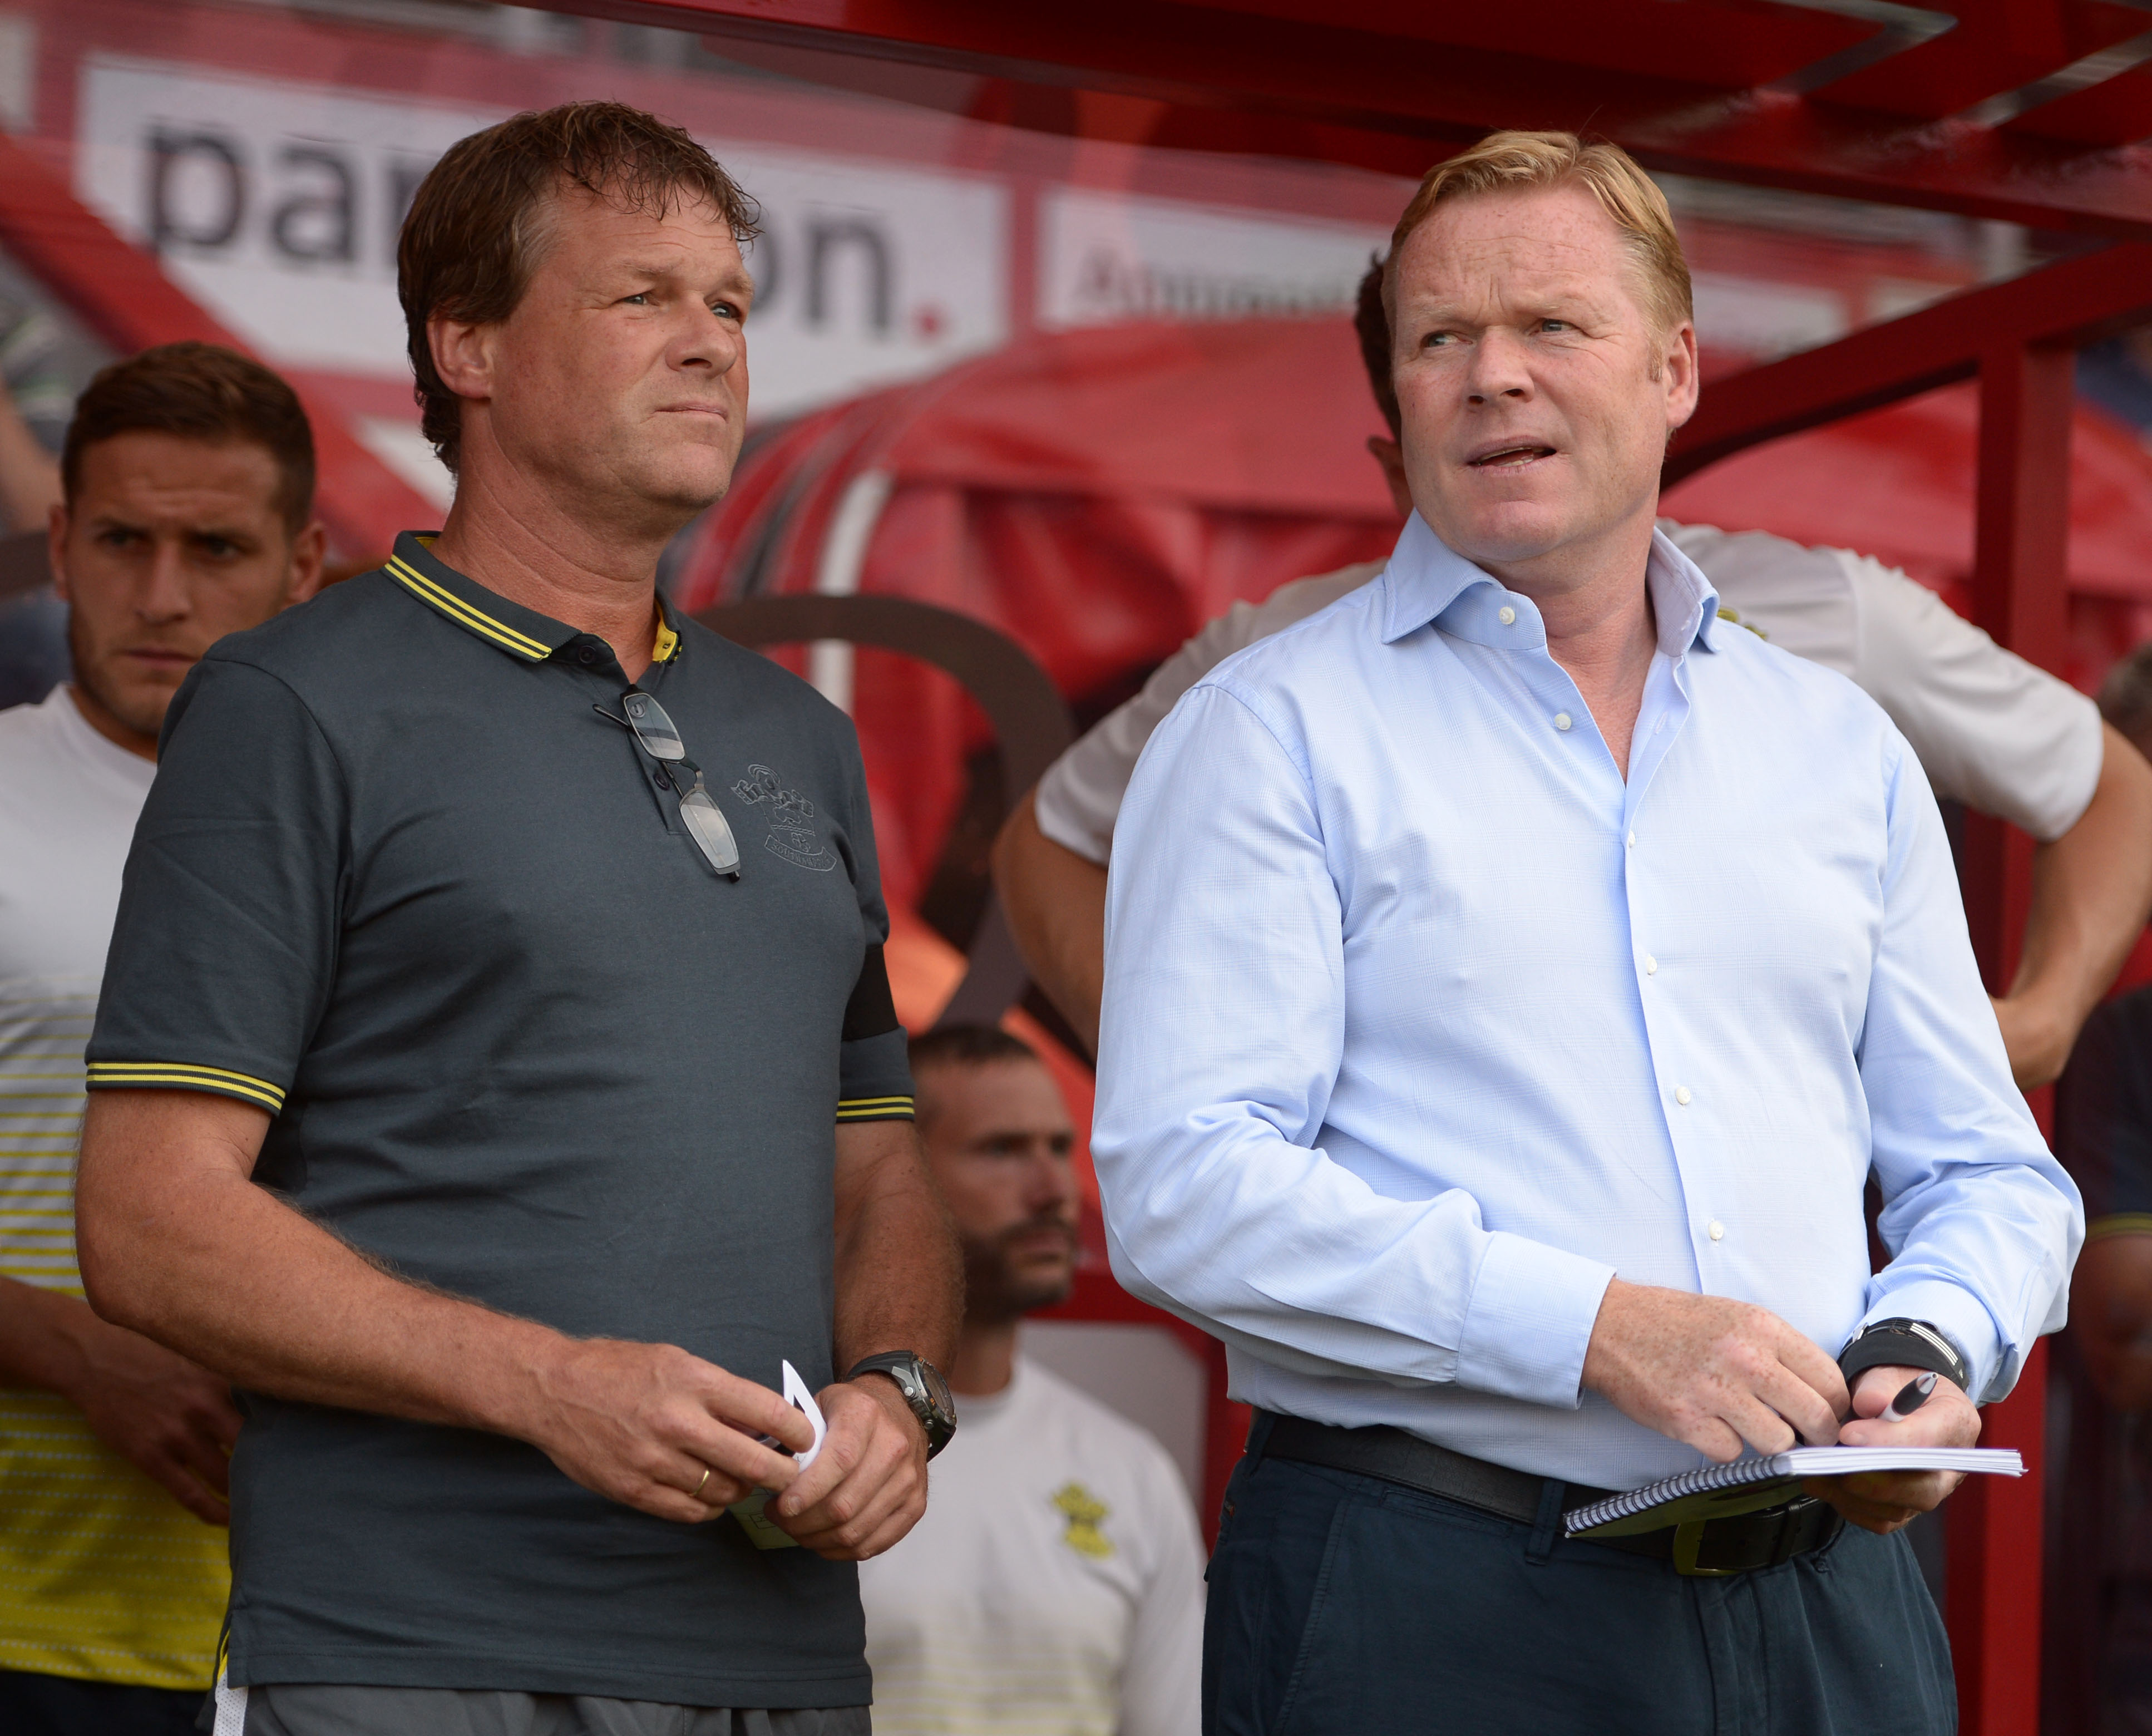 Southampton's Manager Ronald Koeman (right) with his assistant and brother Erwin Koeman (left)